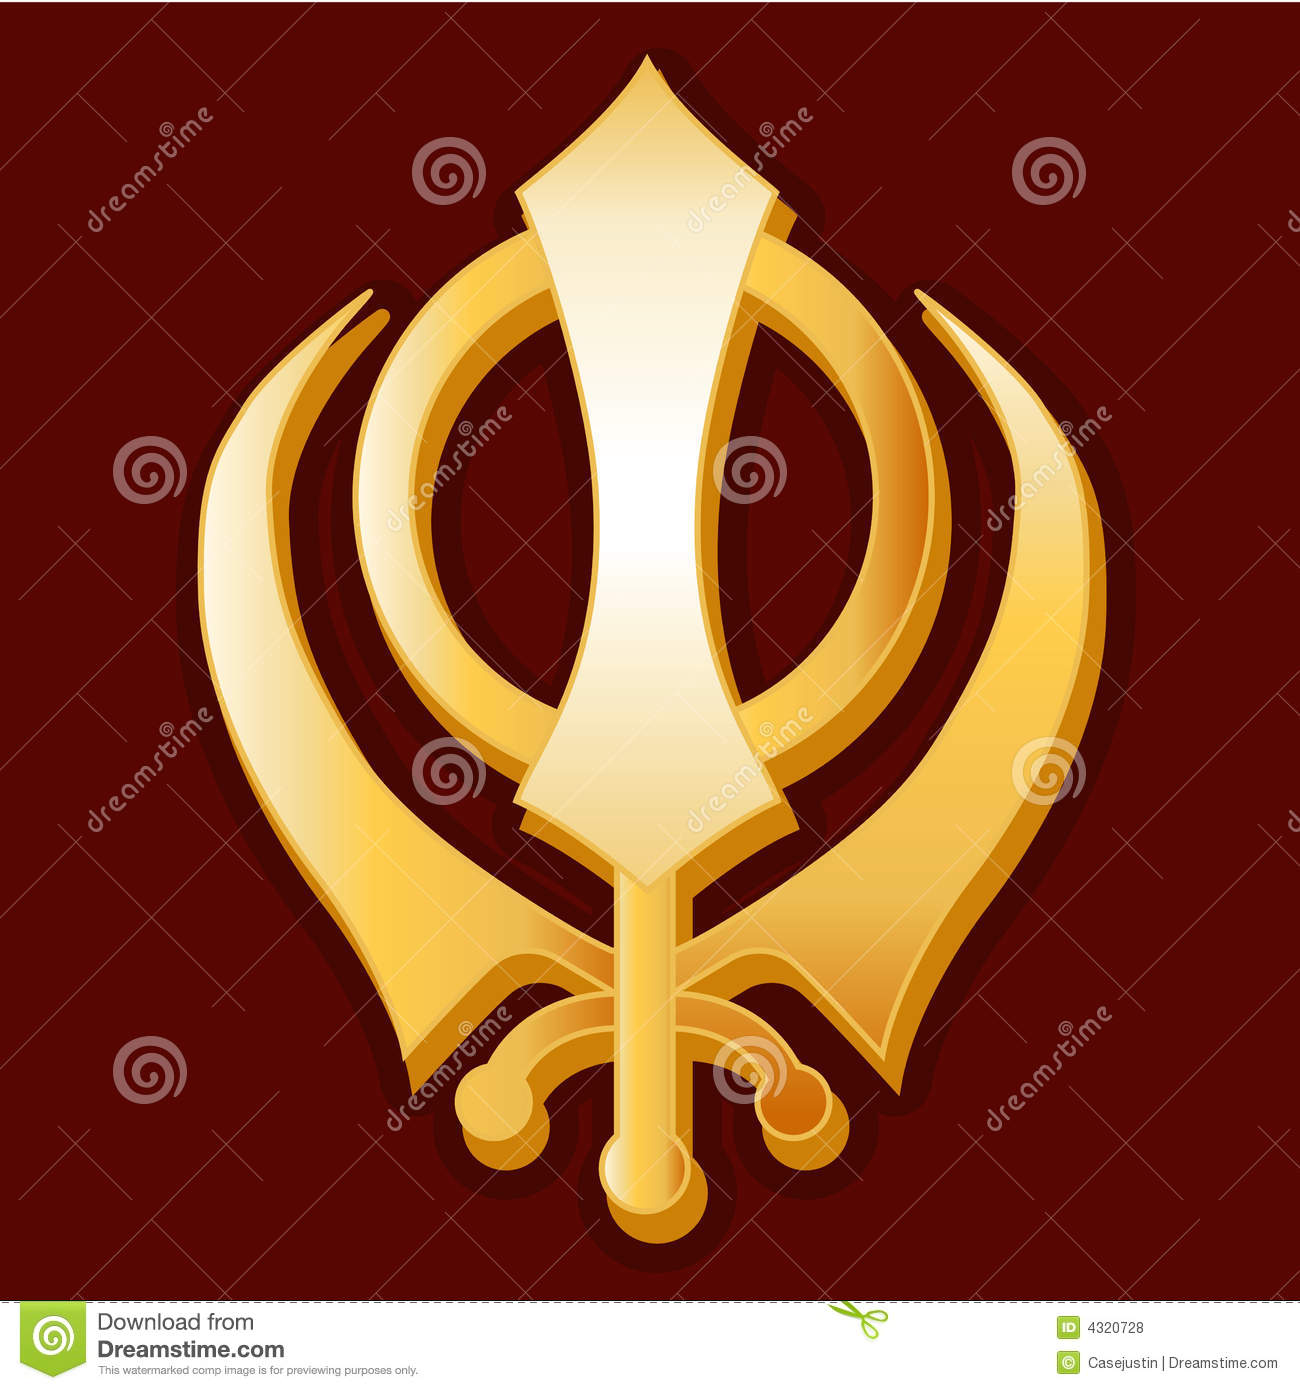 Sikh Symbol Royalty Free Stock Photos  Image 4320728. Abandoned Signs Of Stroke. Meaning Signs Of Stroke. Farmer Signs Of Stroke. Cumulonimbus Cloud Signs. Dental Signs. Hyperkeratosis Signs. Giant Cell Signs. Naruto Signs Of Stroke